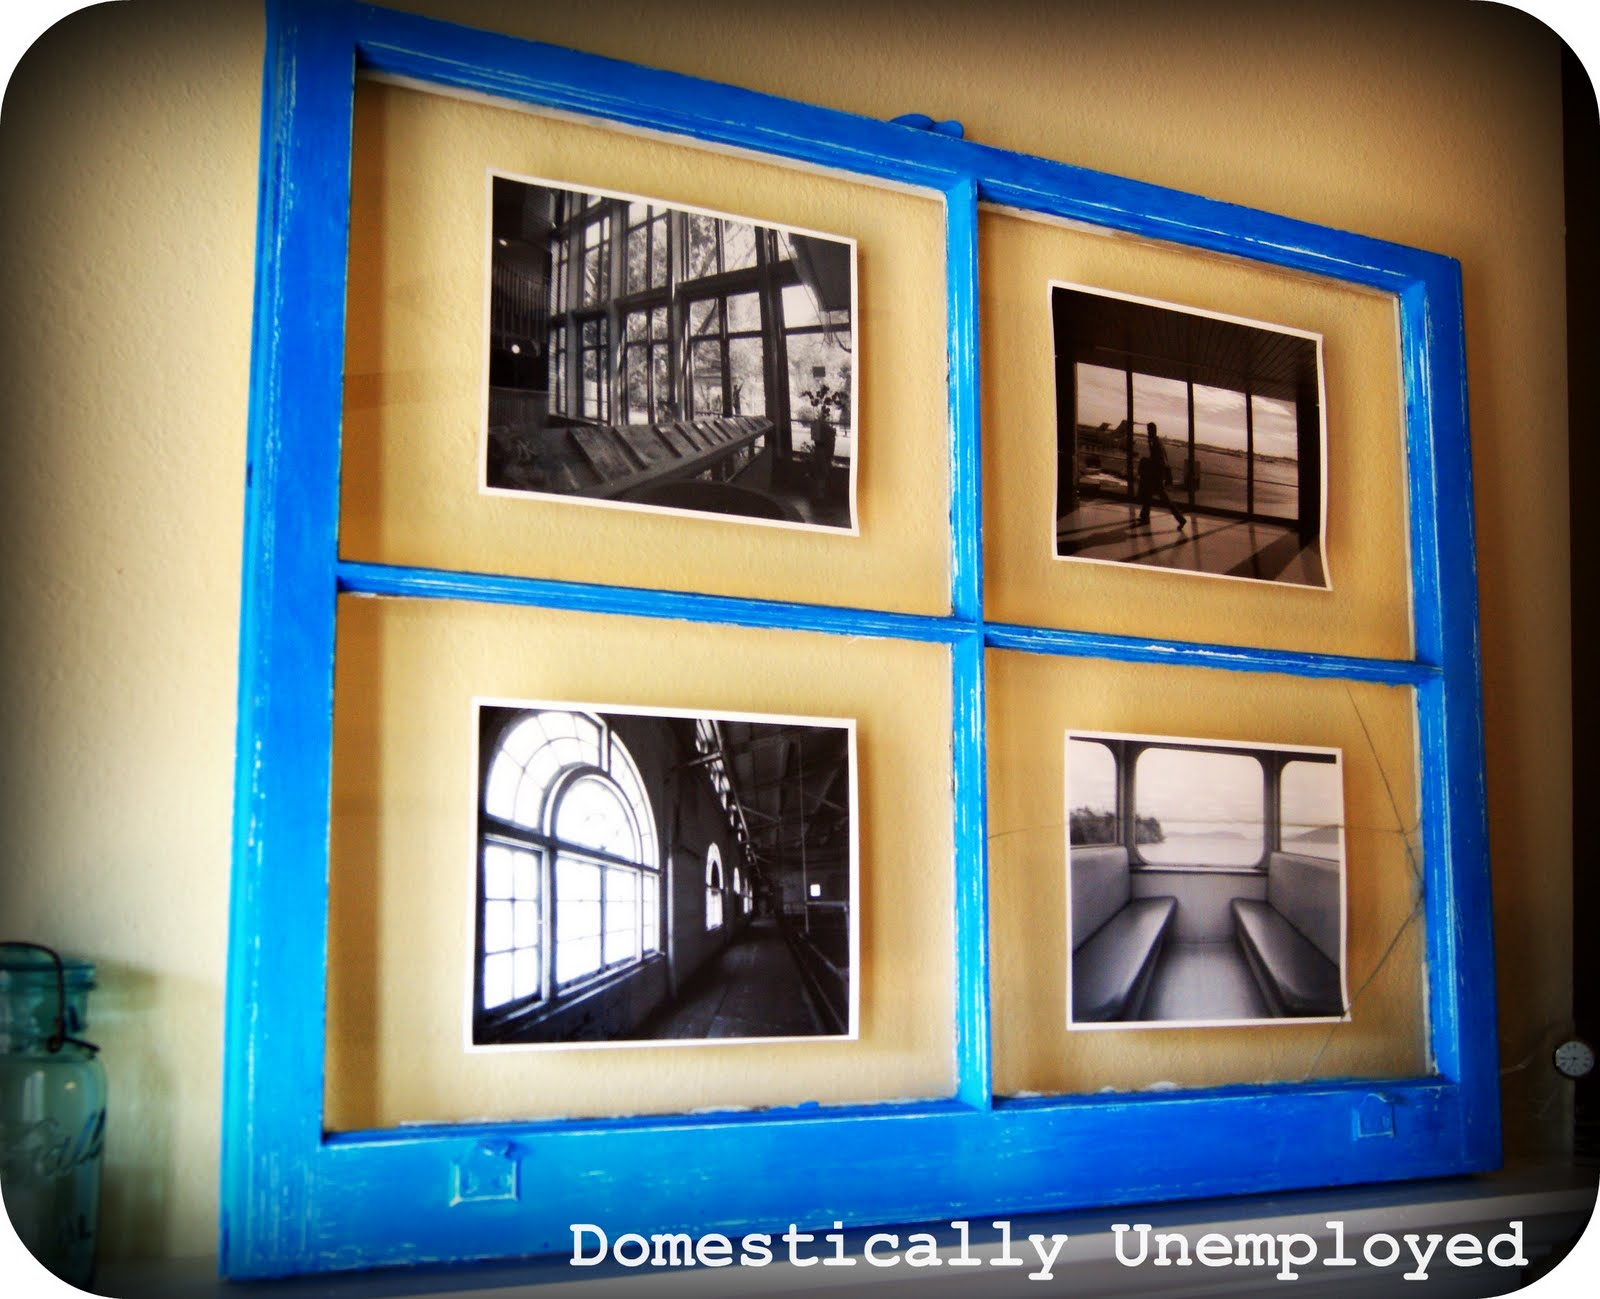 Domestically Unemployed*: Repurposed Window Frame